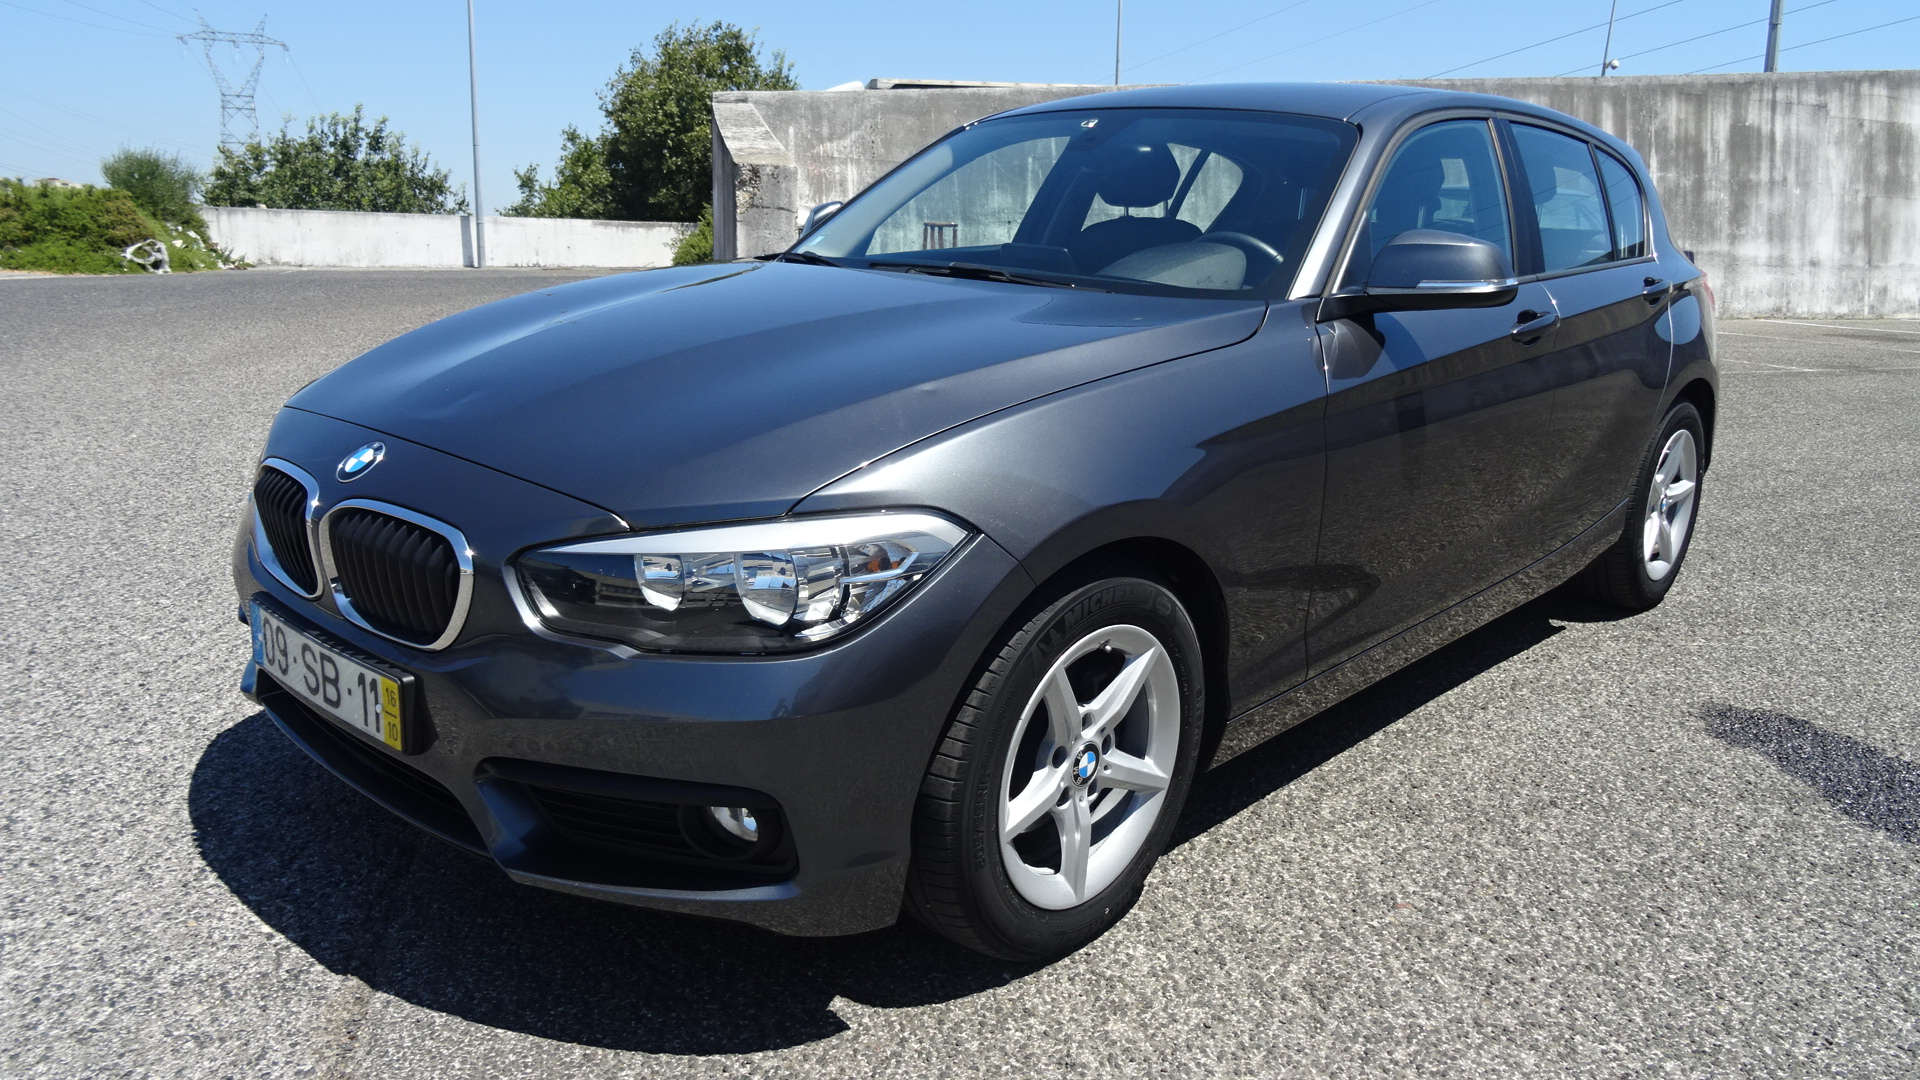 BMW 116 d Efficient Dynamics Advance (5p)